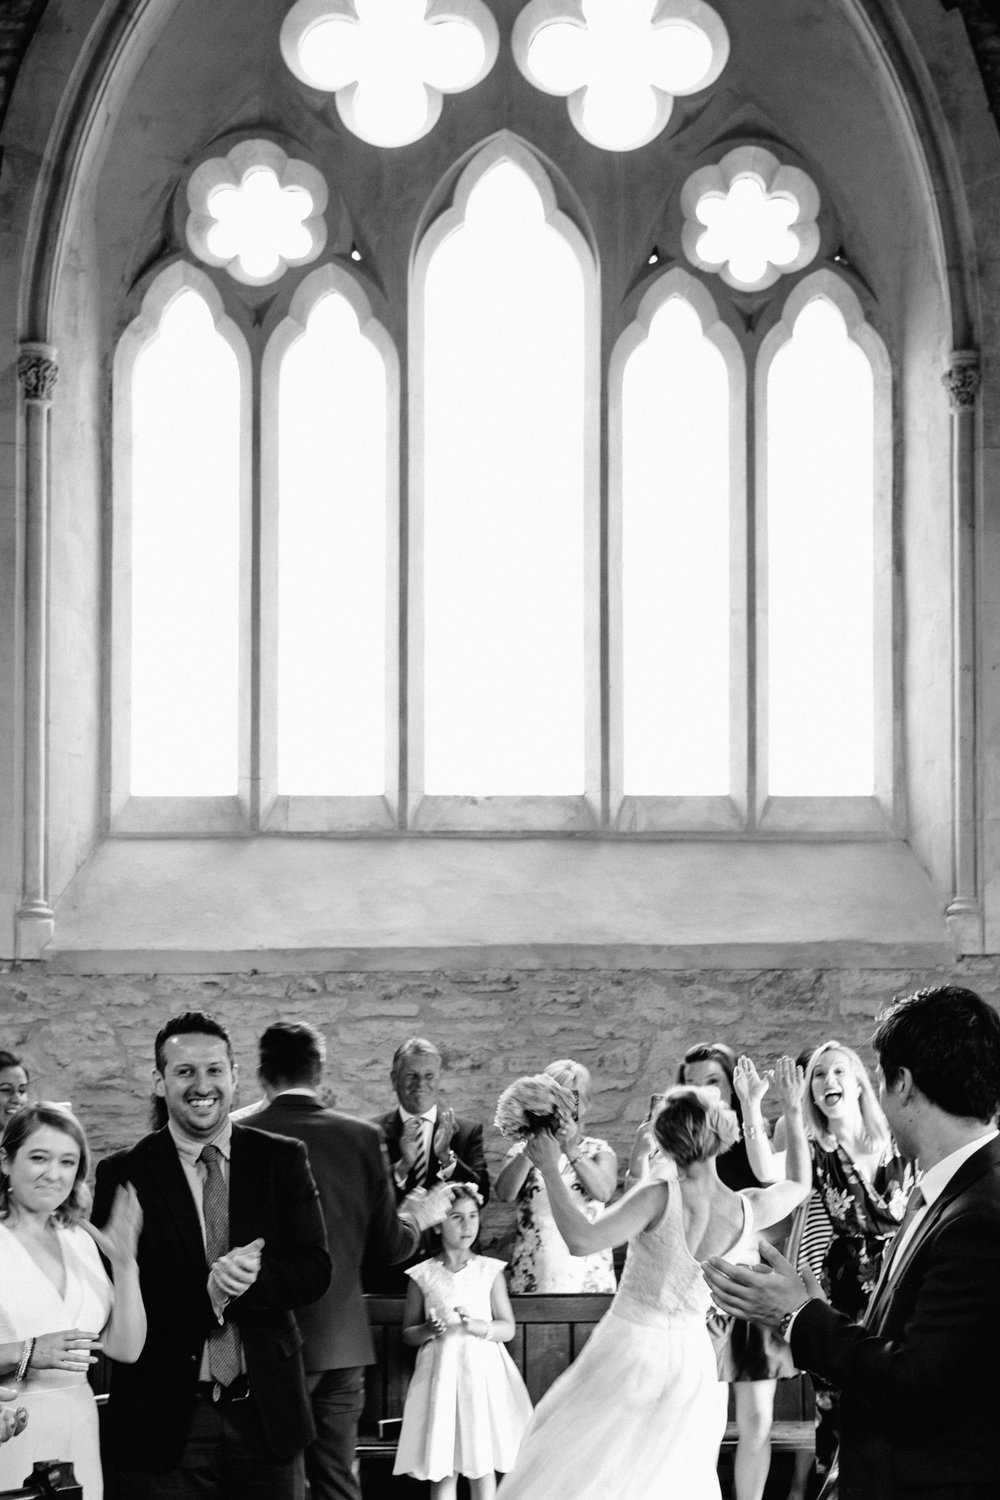 Alex_Sedgmond_Michelle&Andrew_WeddingDay-136.JPG